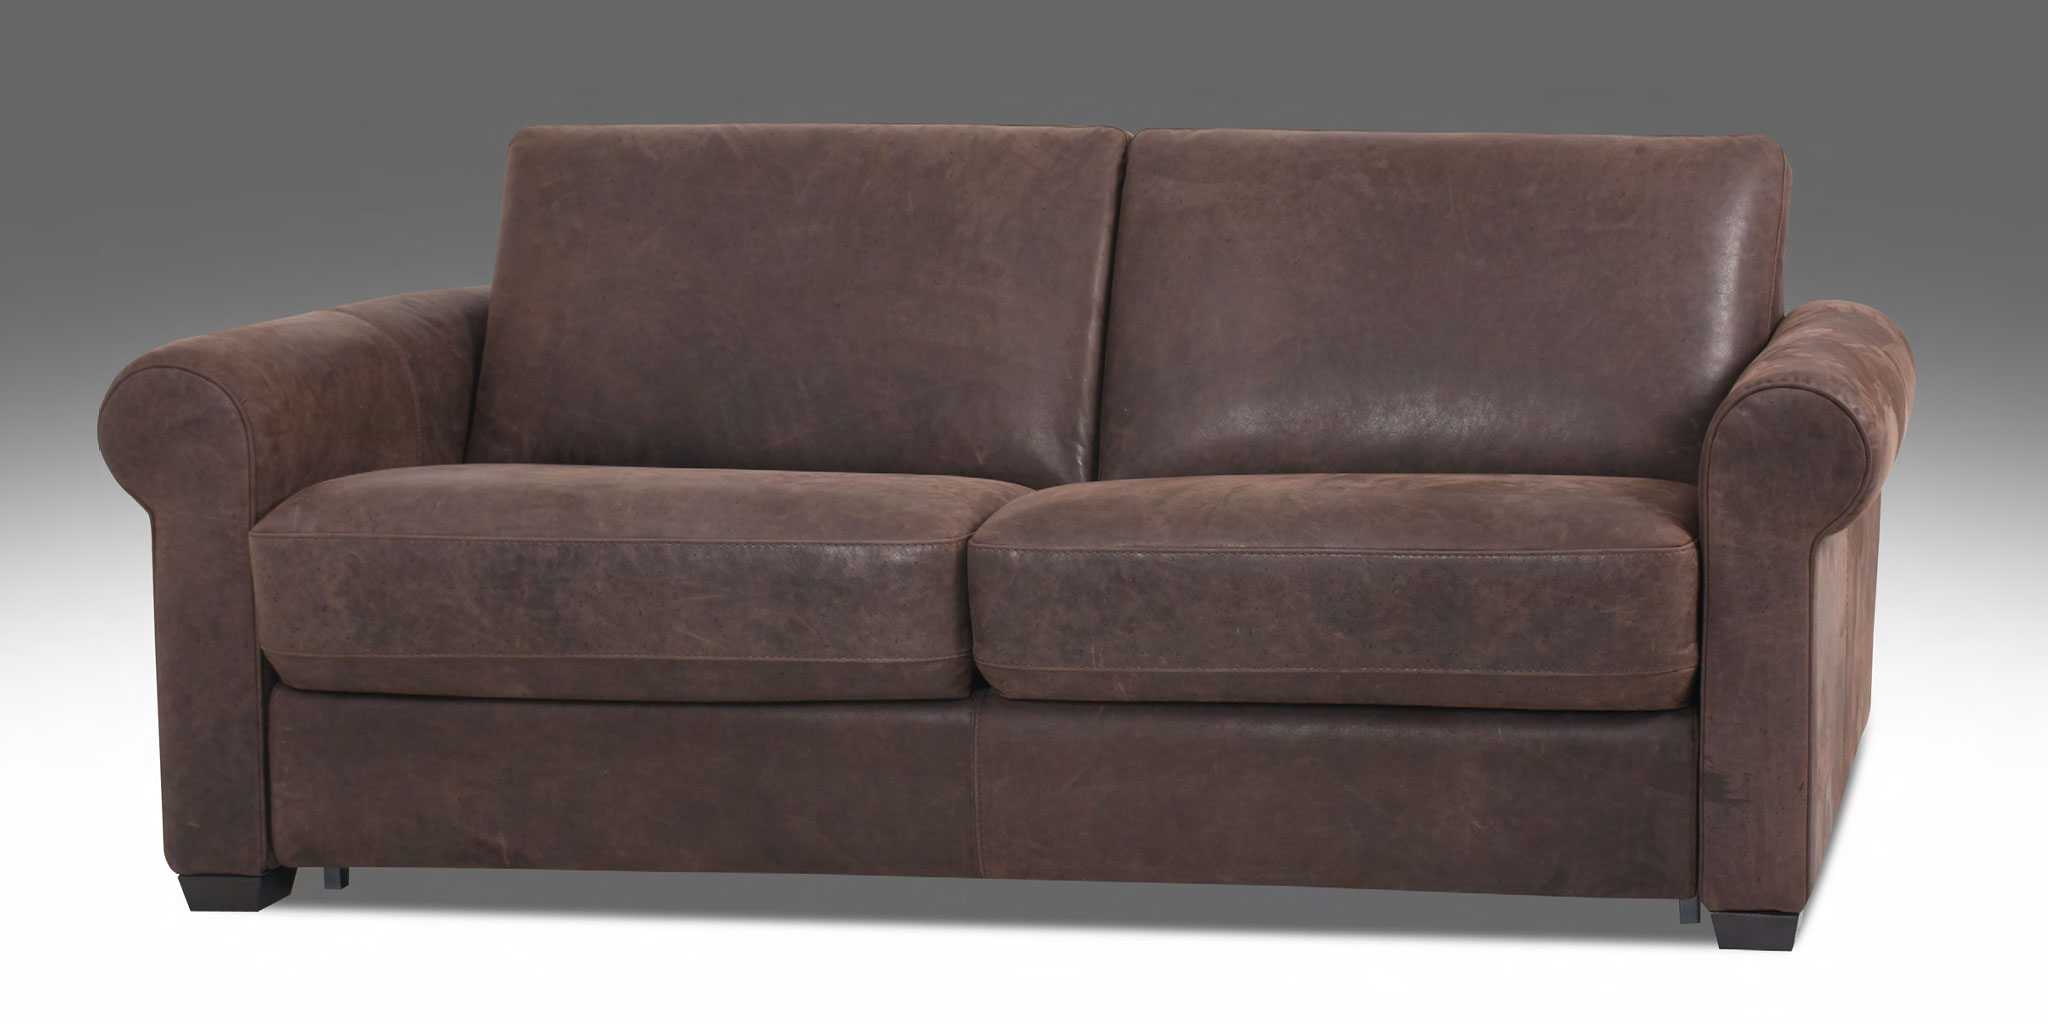 Viseu Sofa Bed